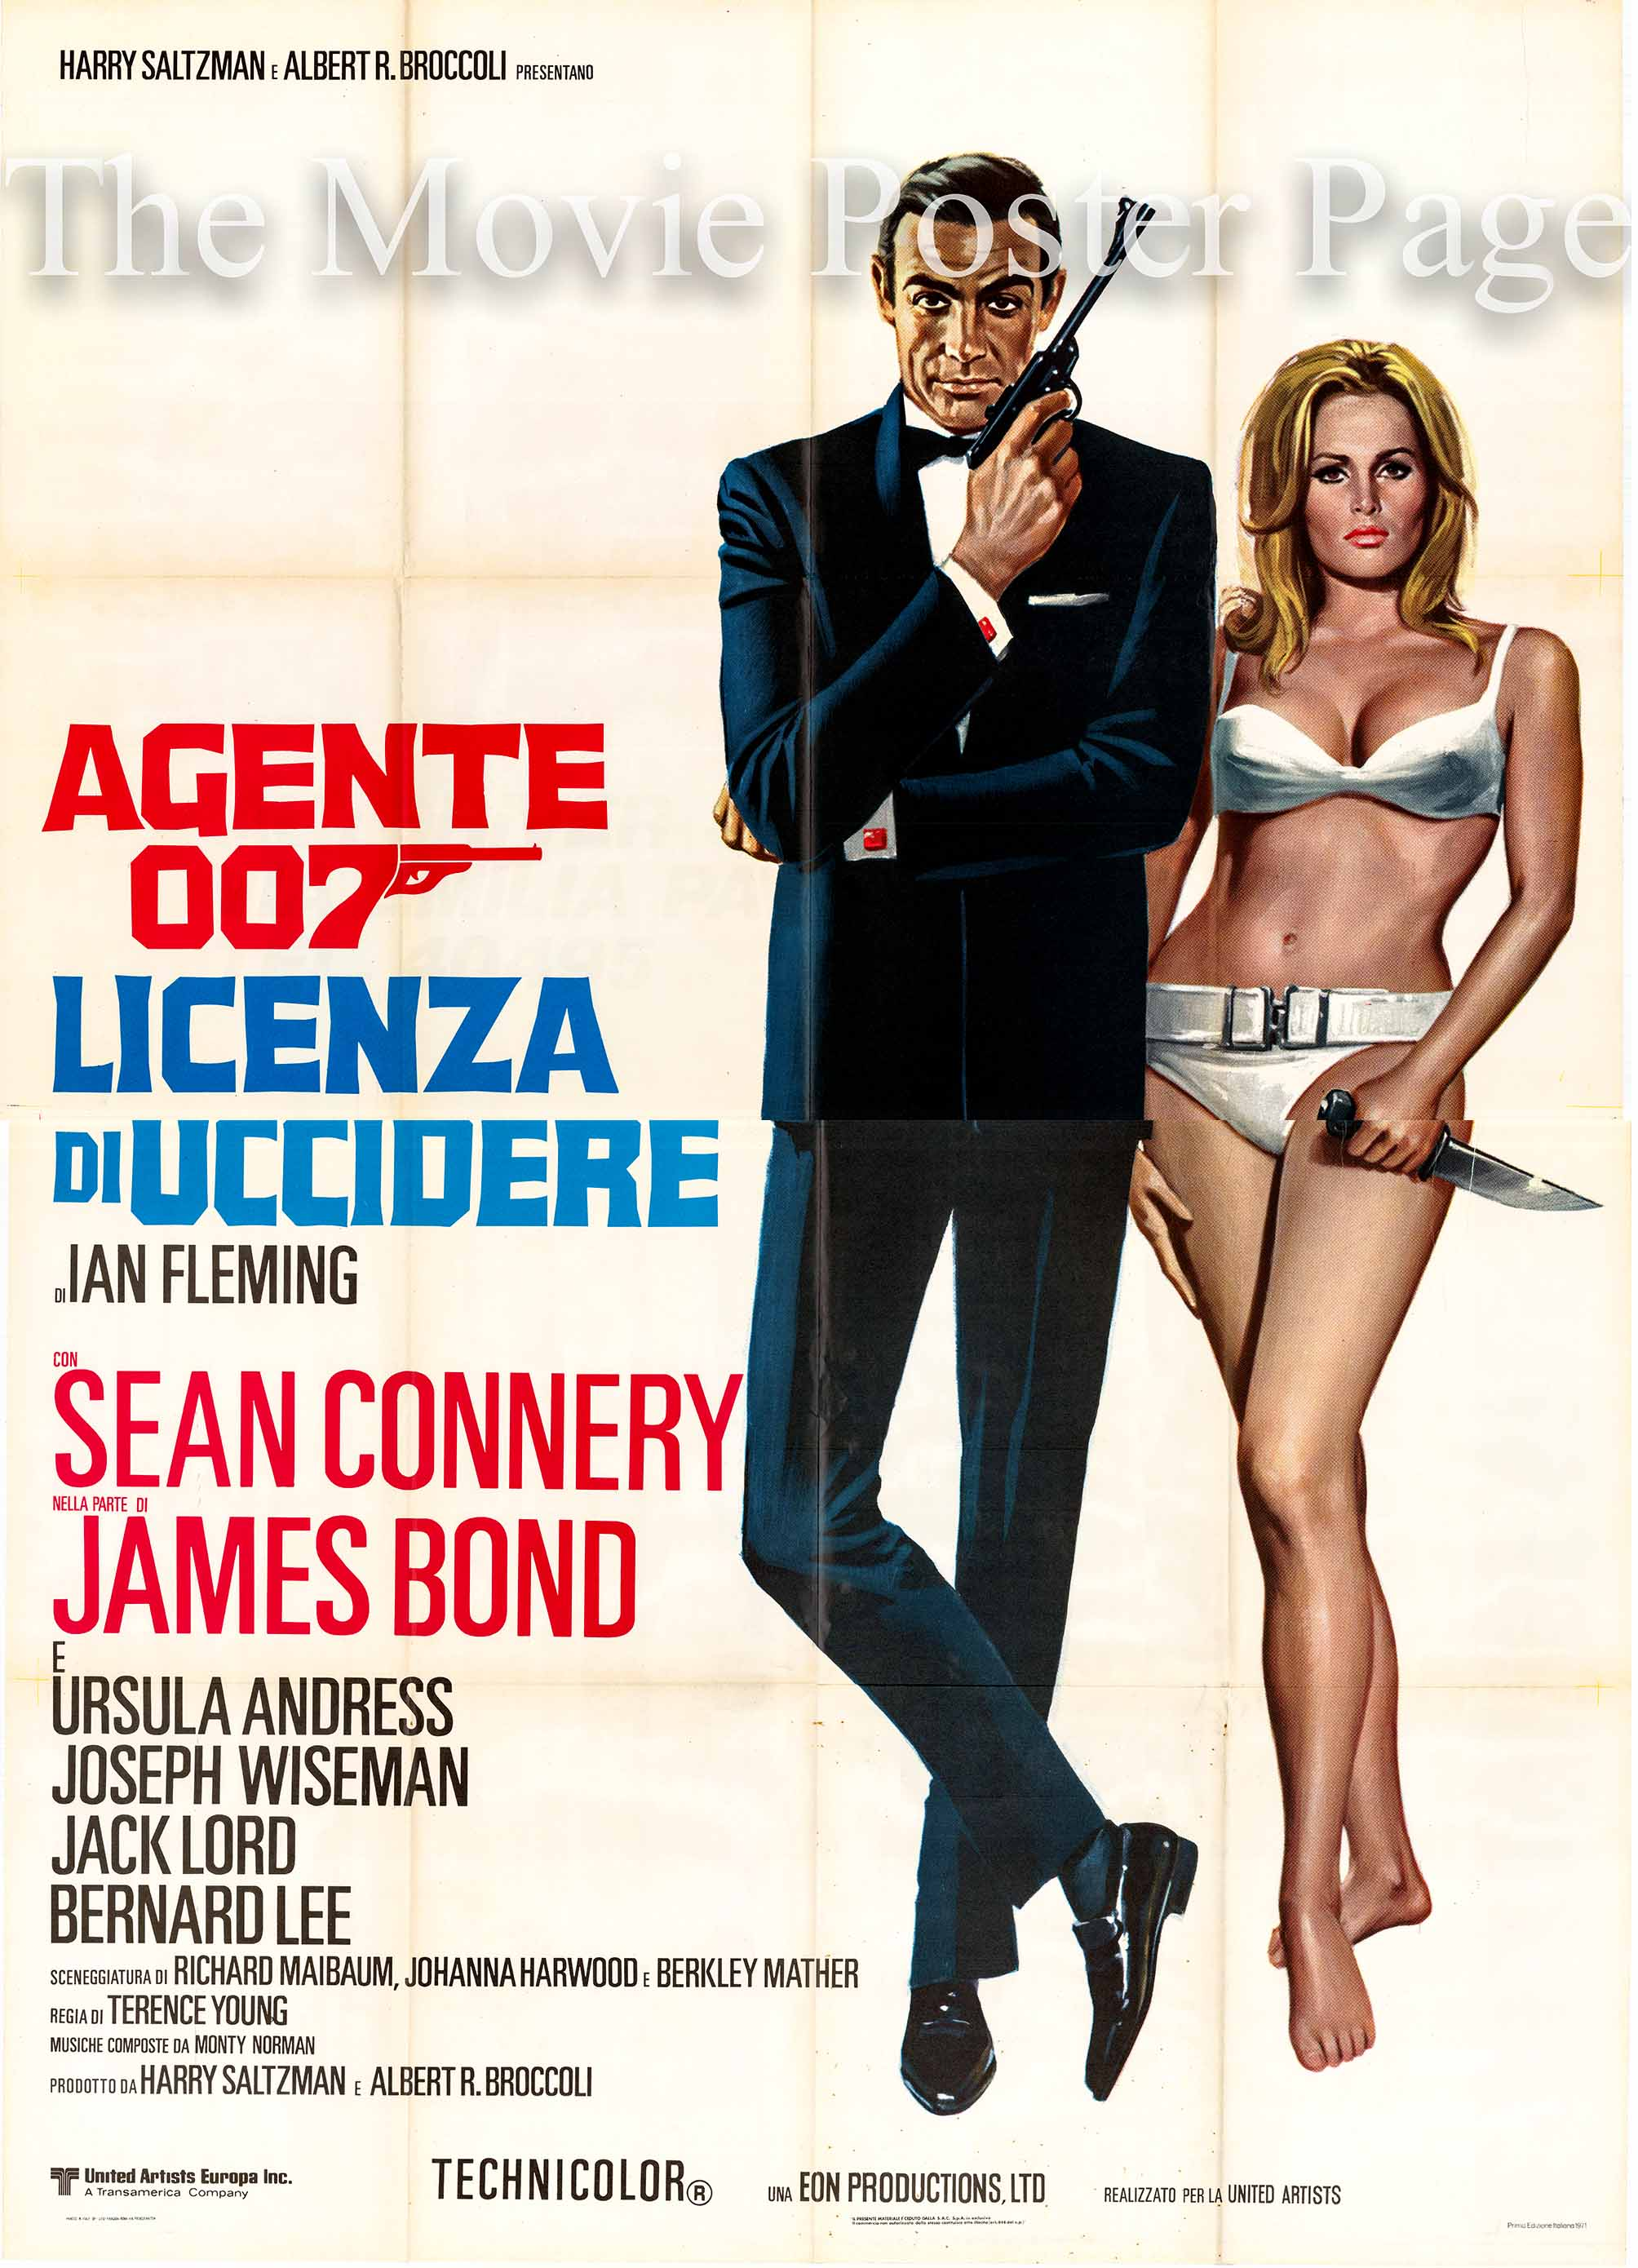 Pictured is an Italian four-sheet promotional poster for a 1971 rerelease of the 1962 Terence Young film Dr. No starring Sean Connery as James Bond.